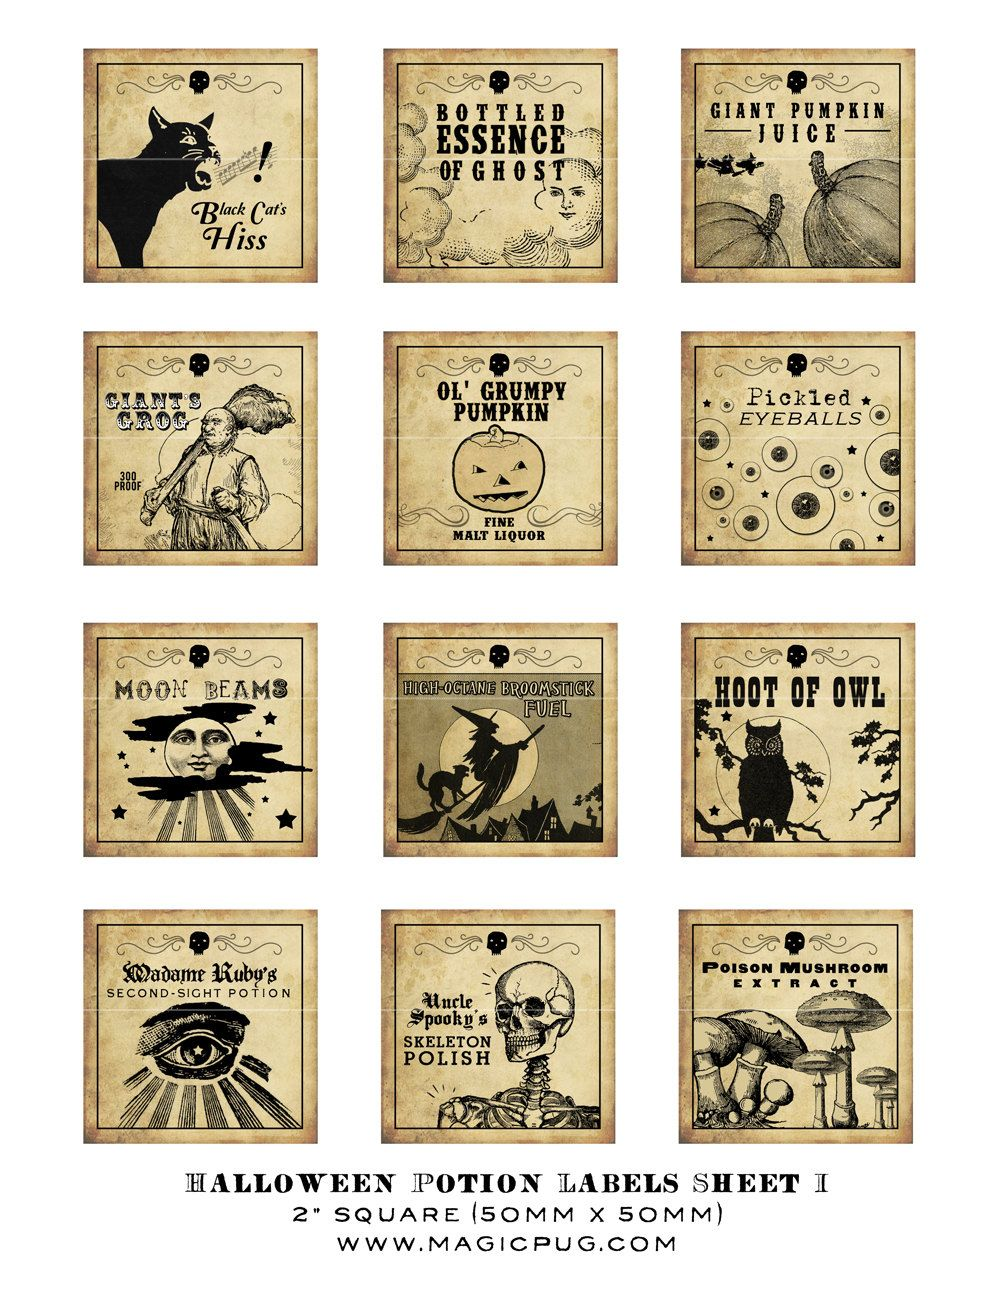 antique halloween potion labels i 2x2 inch digital collage sheet inchies 50mm square witch owl. Black Bedroom Furniture Sets. Home Design Ideas